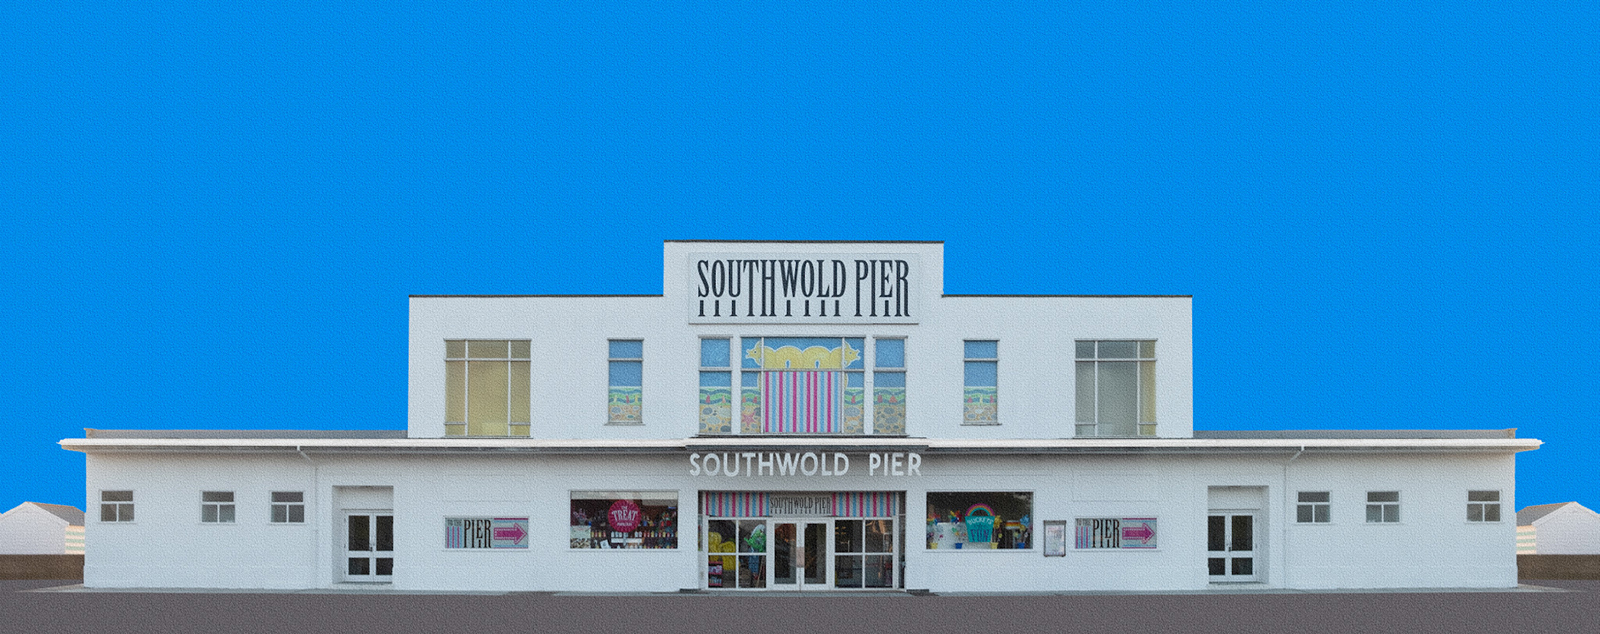 Southwold Pier Digital Restoration